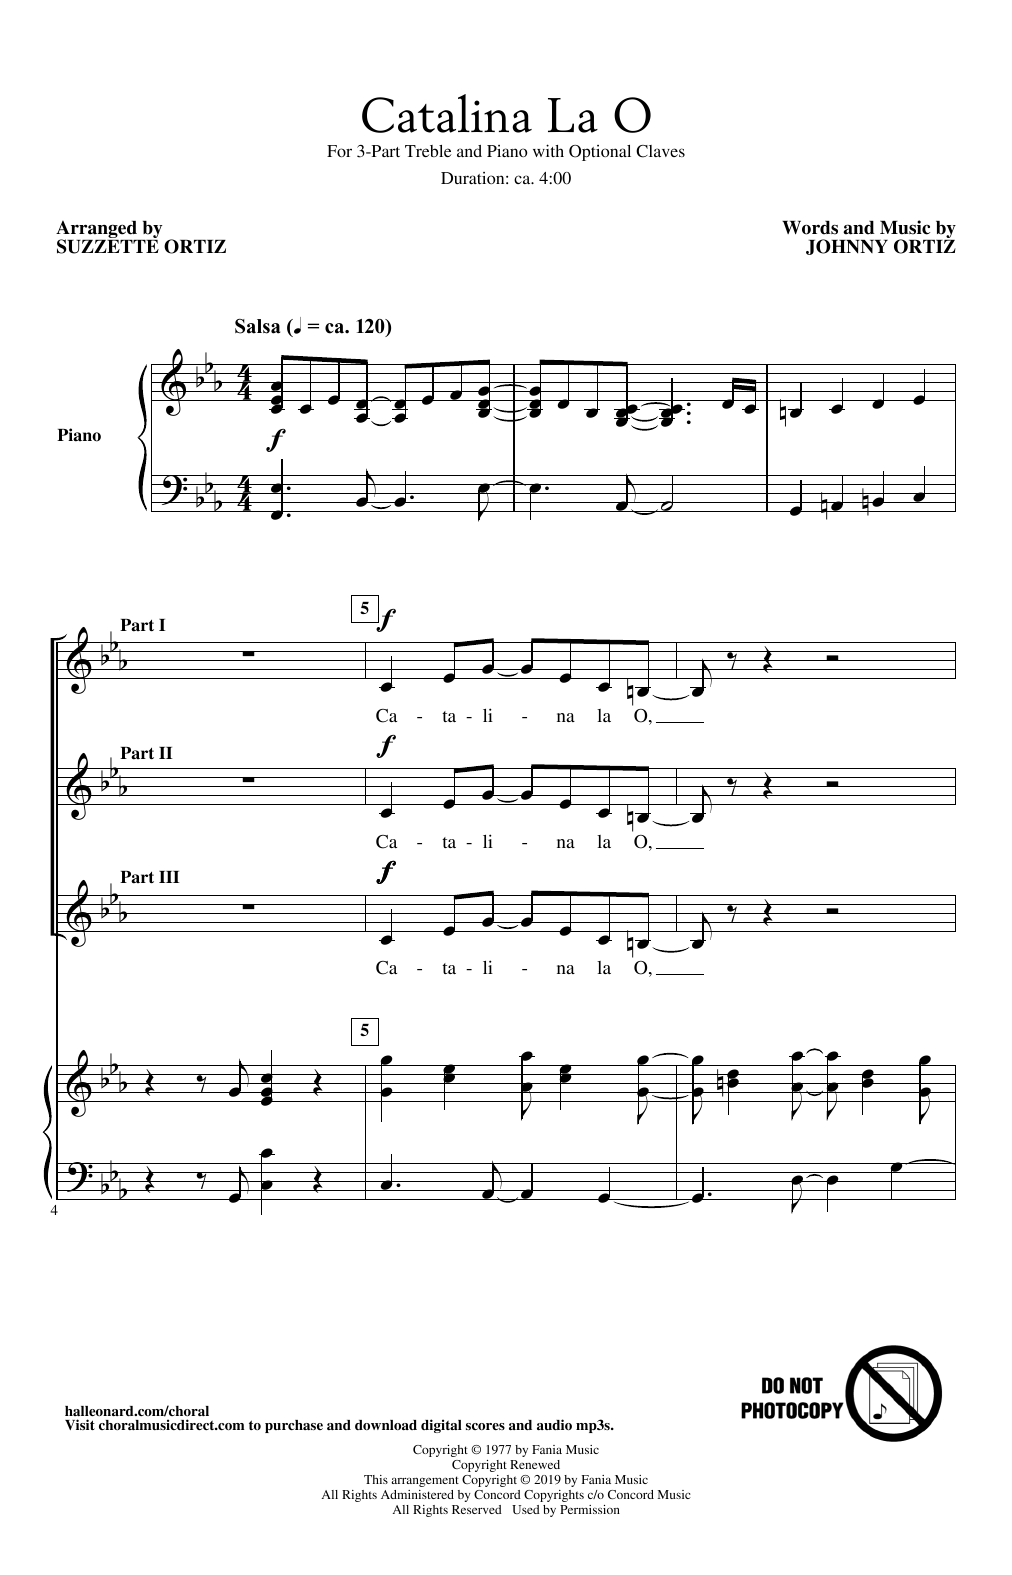 Download Johnny Ortiz 'Catalina La O (arr. Suzzette Ortiz)' Digital Sheet Music Notes & Chords and start playing in minutes